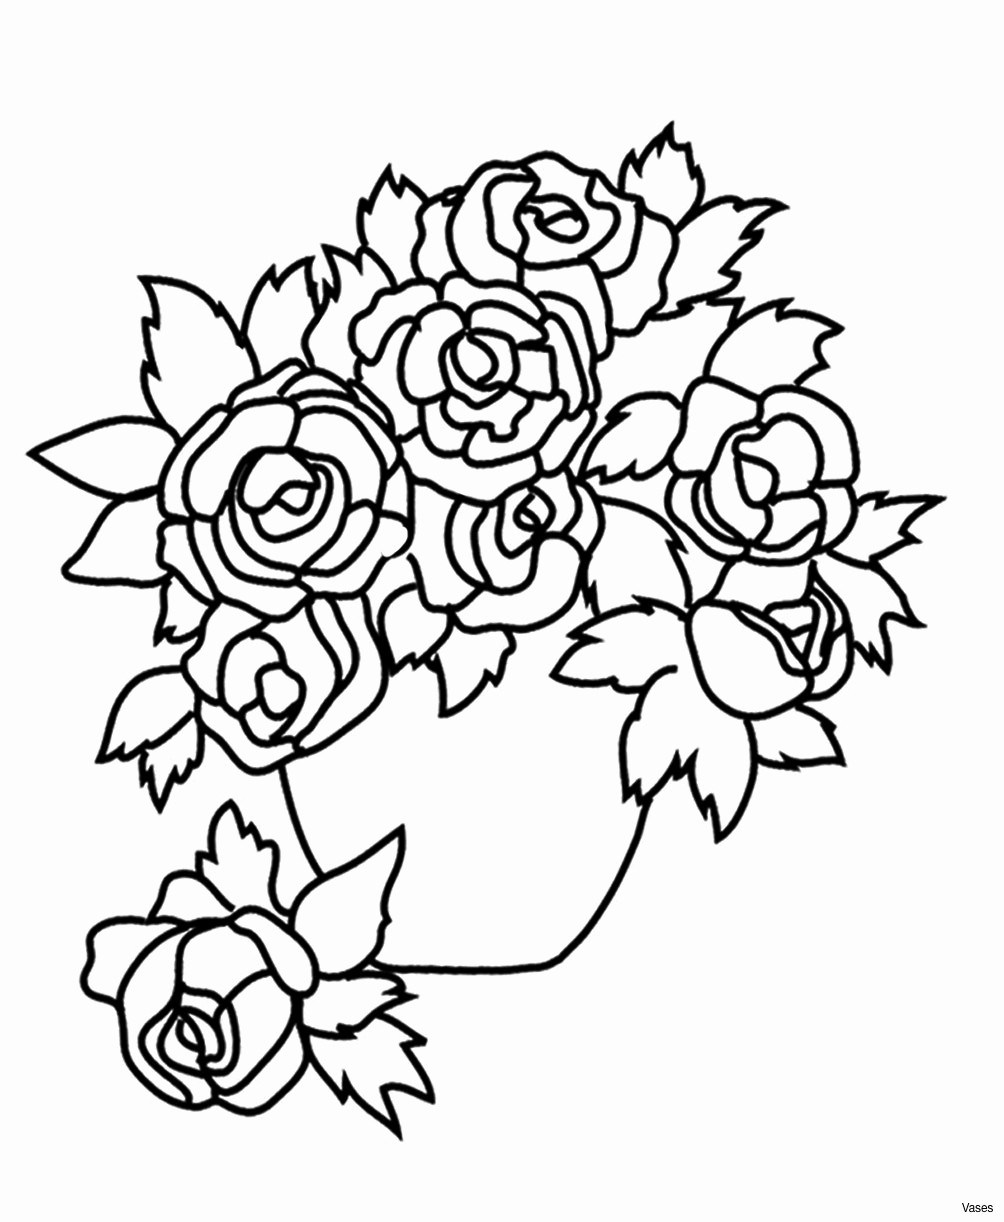 pretty flower vases of parrot coloring pictures fresh cool vases flower vase coloring page pertaining to parrot coloring pictures fresh cool vases flower vase coloring page pages flowers in a top i